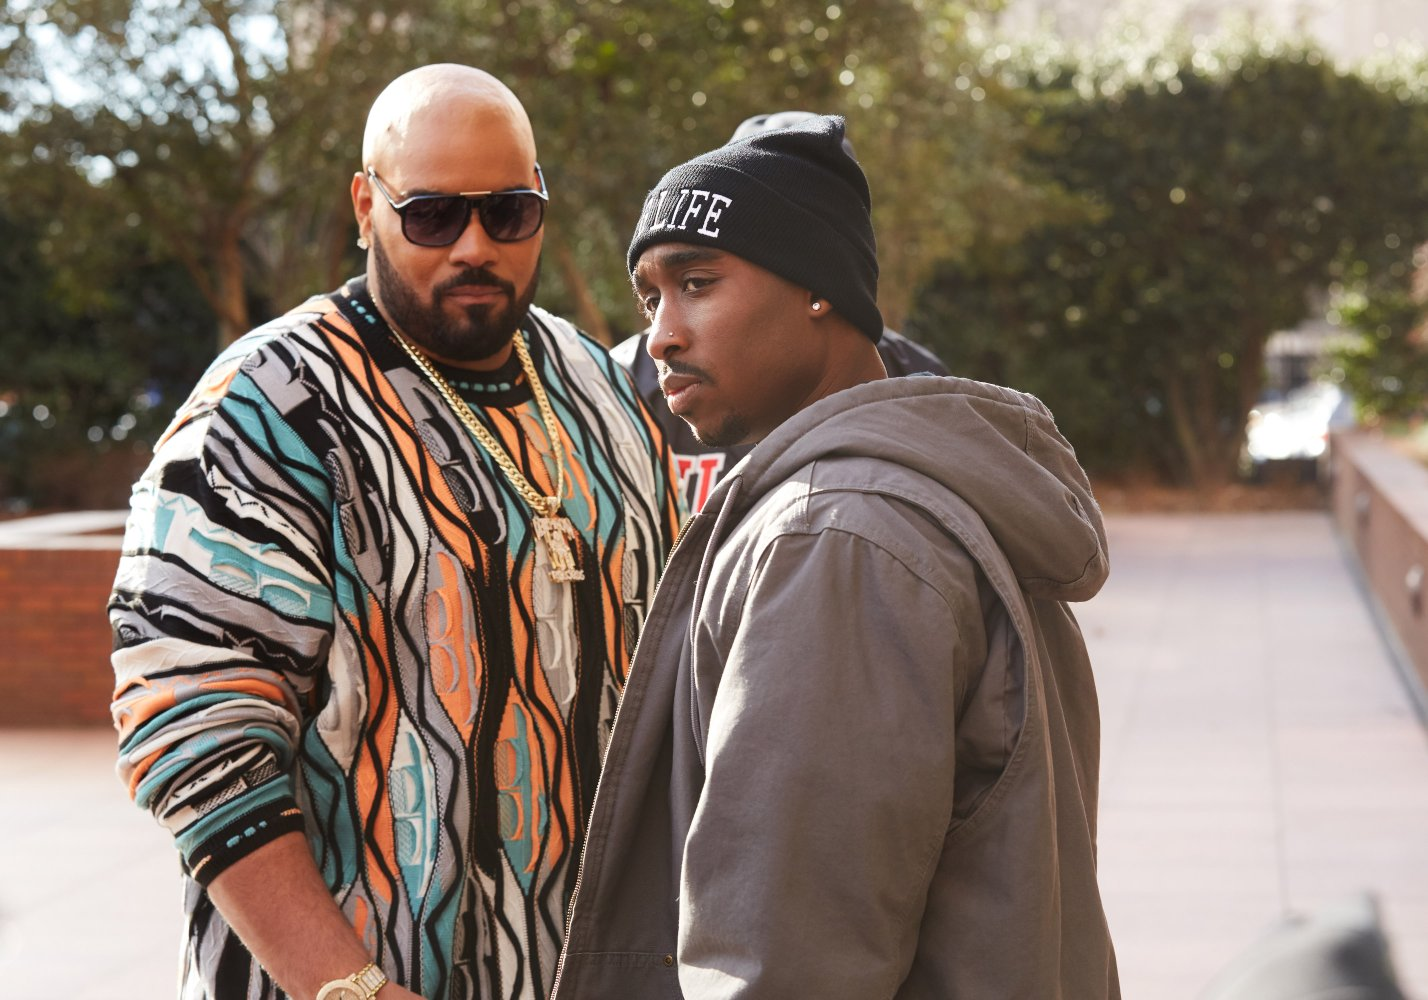 Puerto Rican Actor Dominic Santana On Playing the Unenviable Role of Suge Knight in 'All Eyez On Me'